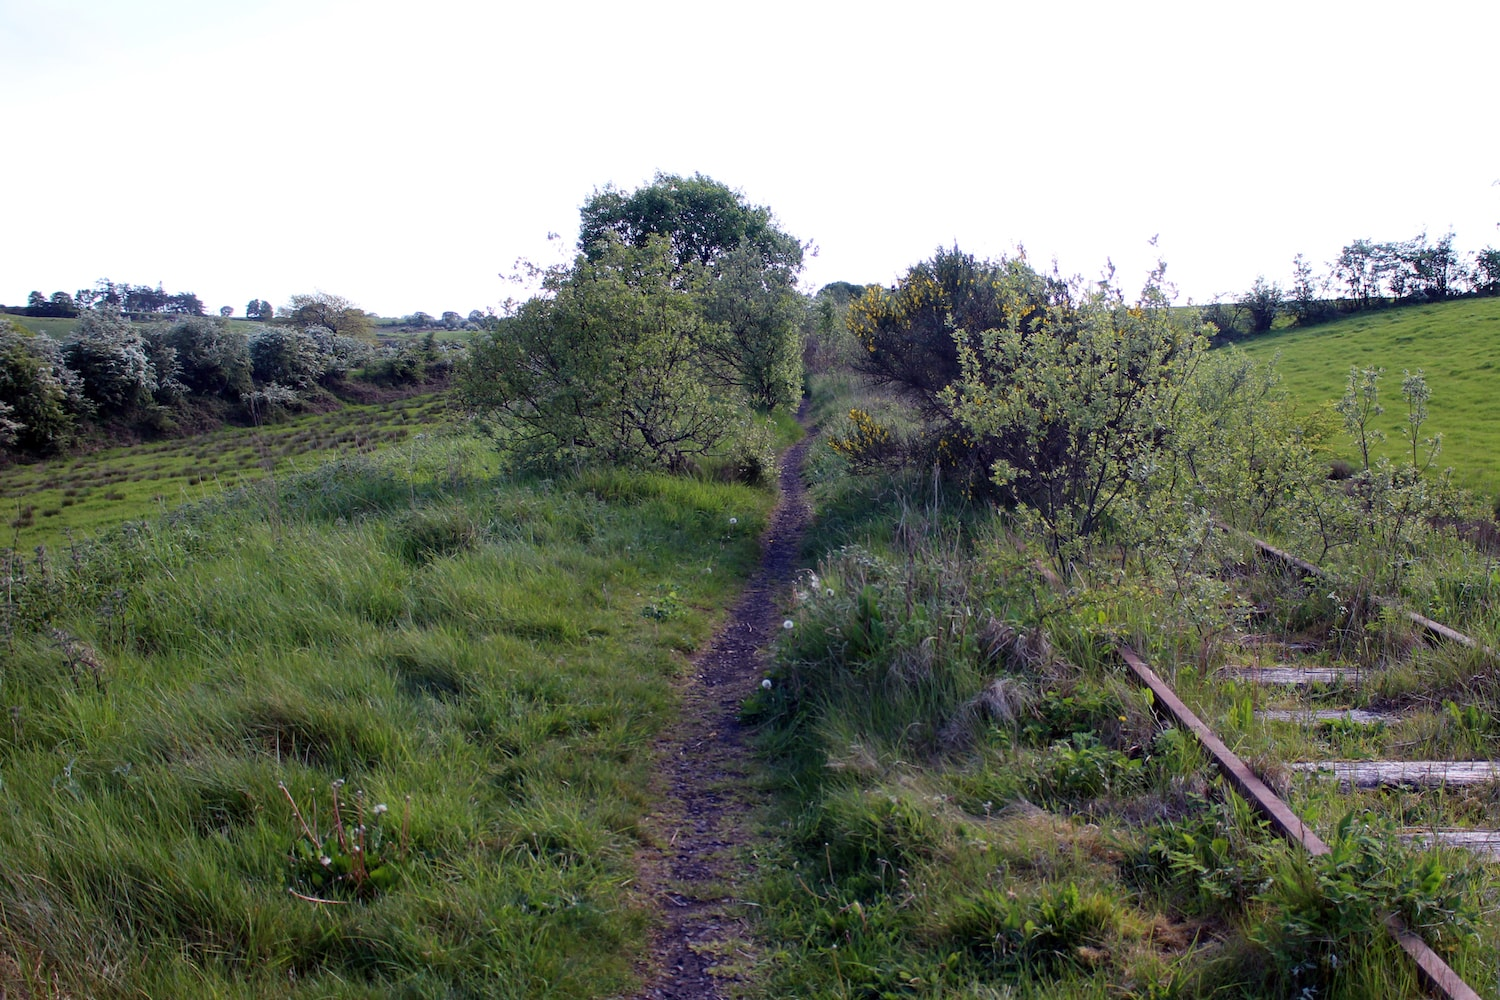 Sections of the branch line are still visible in places